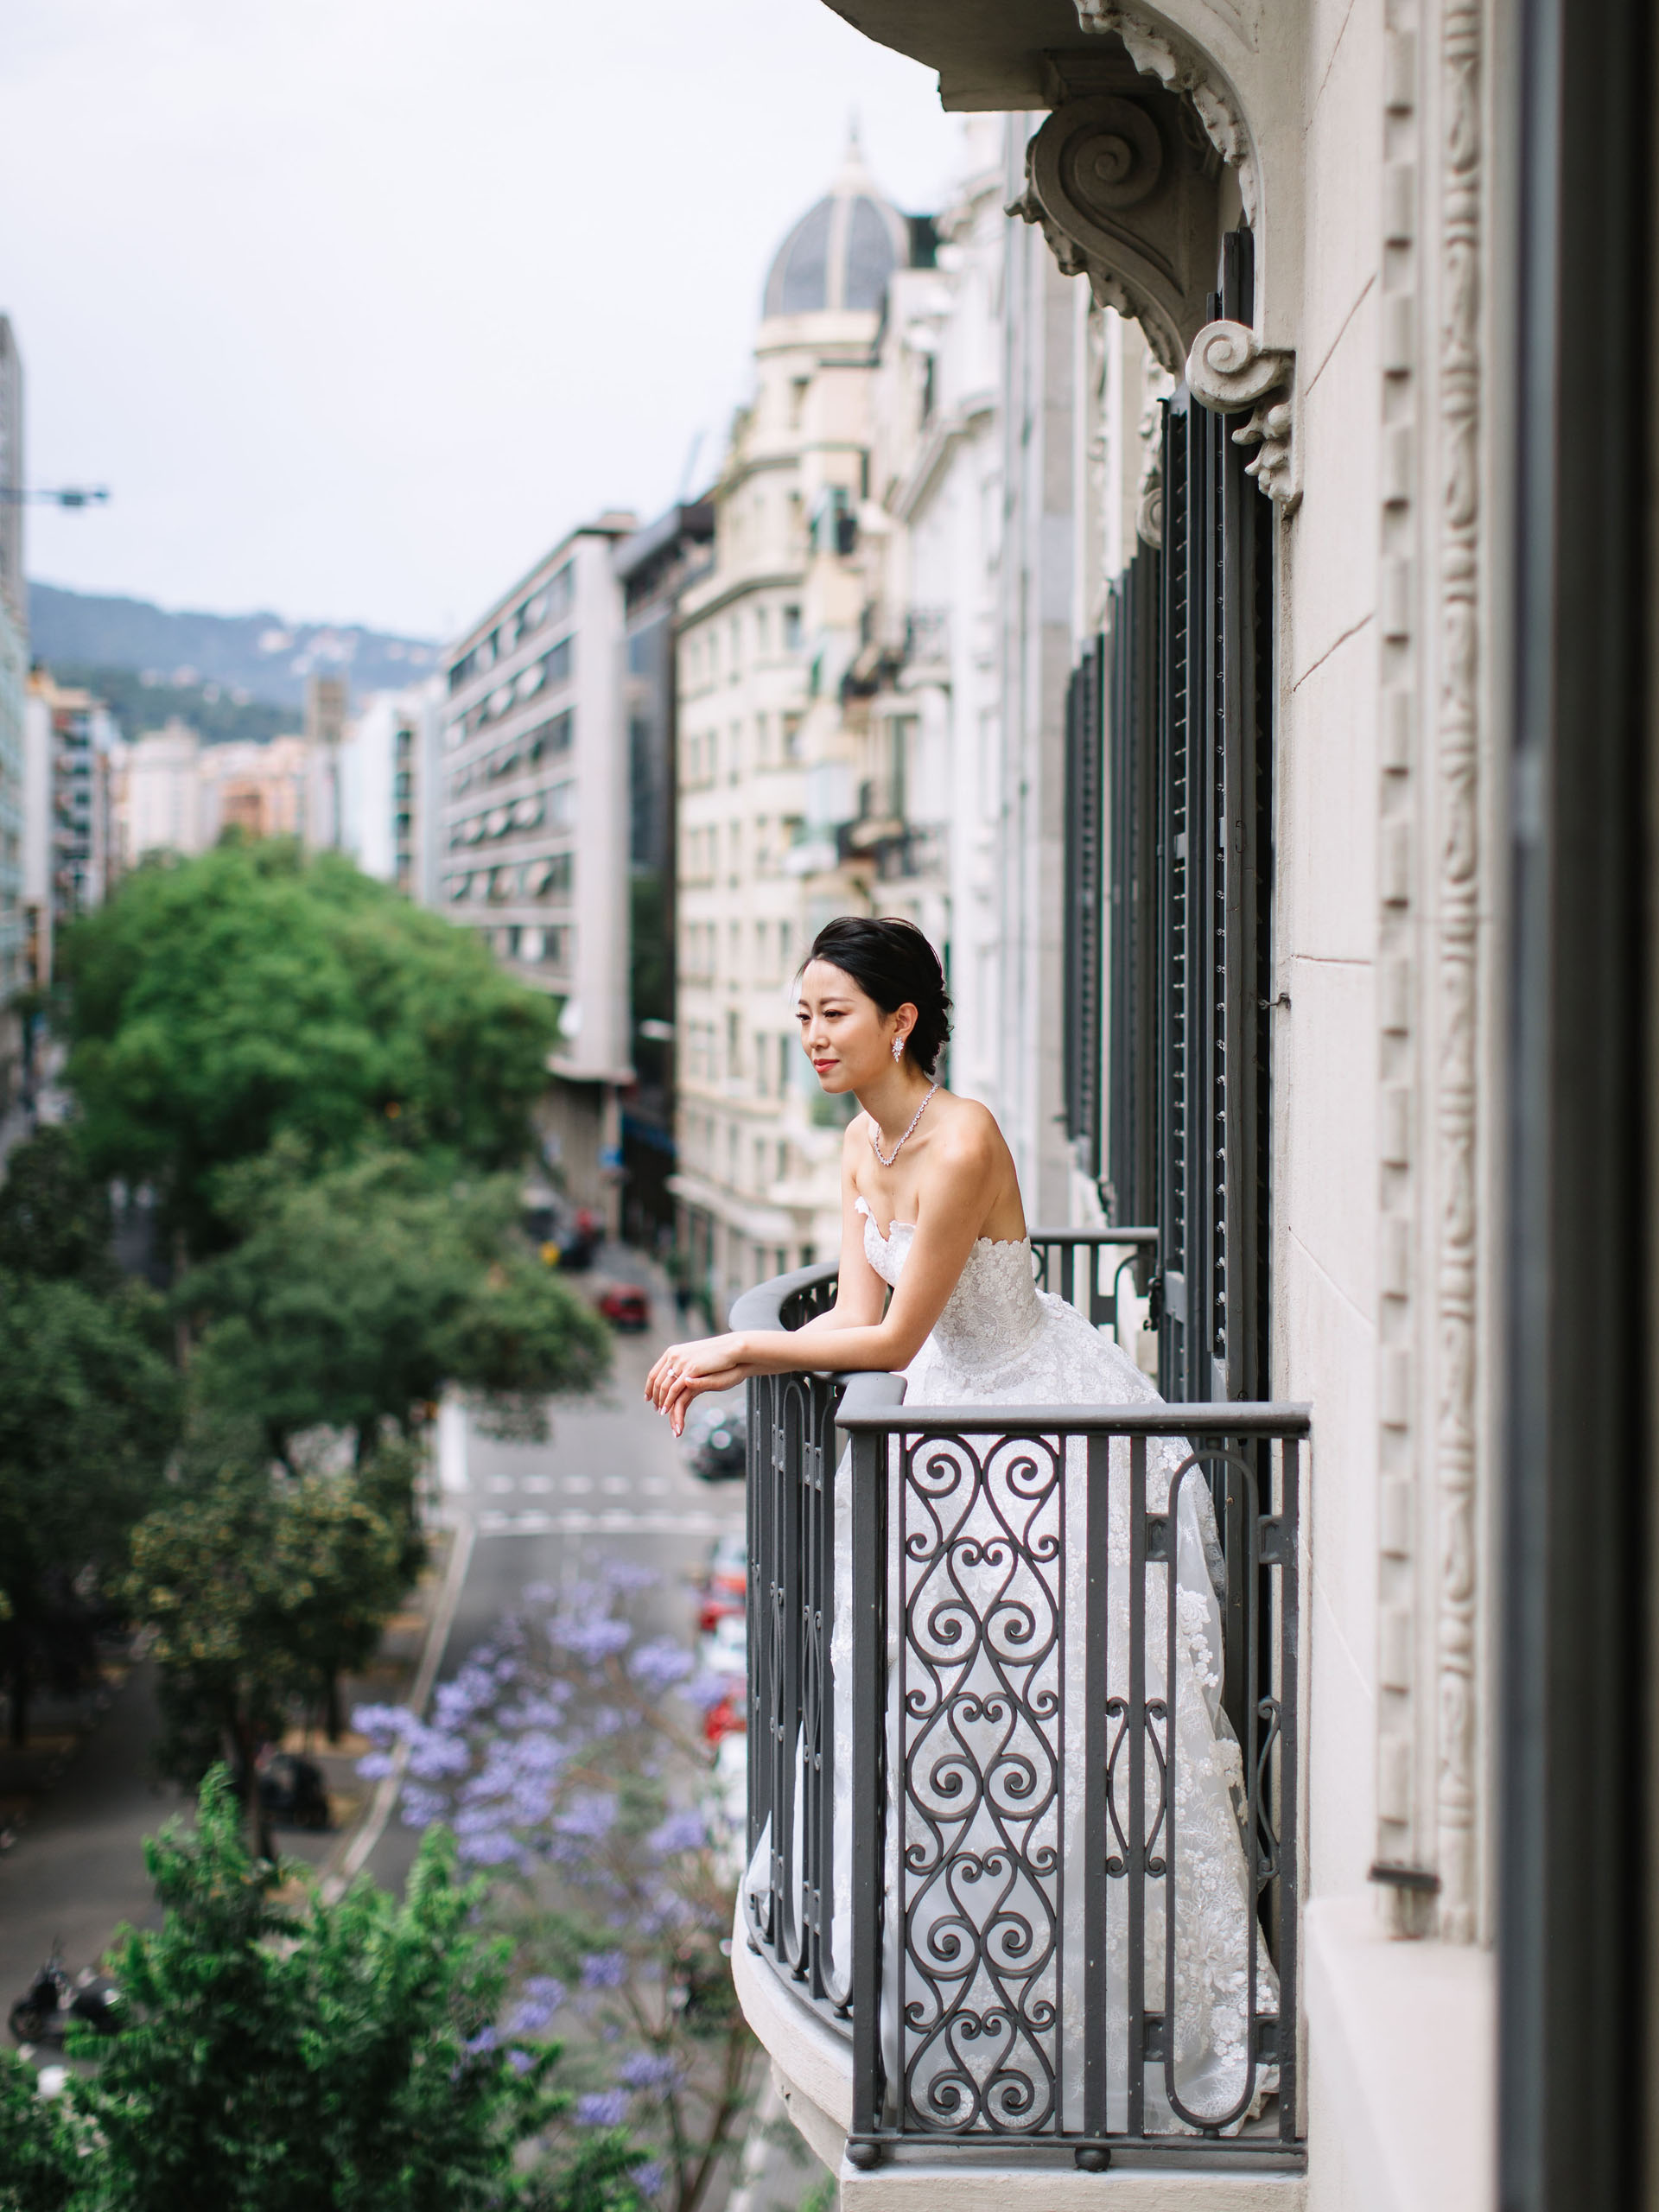 bride-wedding-barcelona-dream